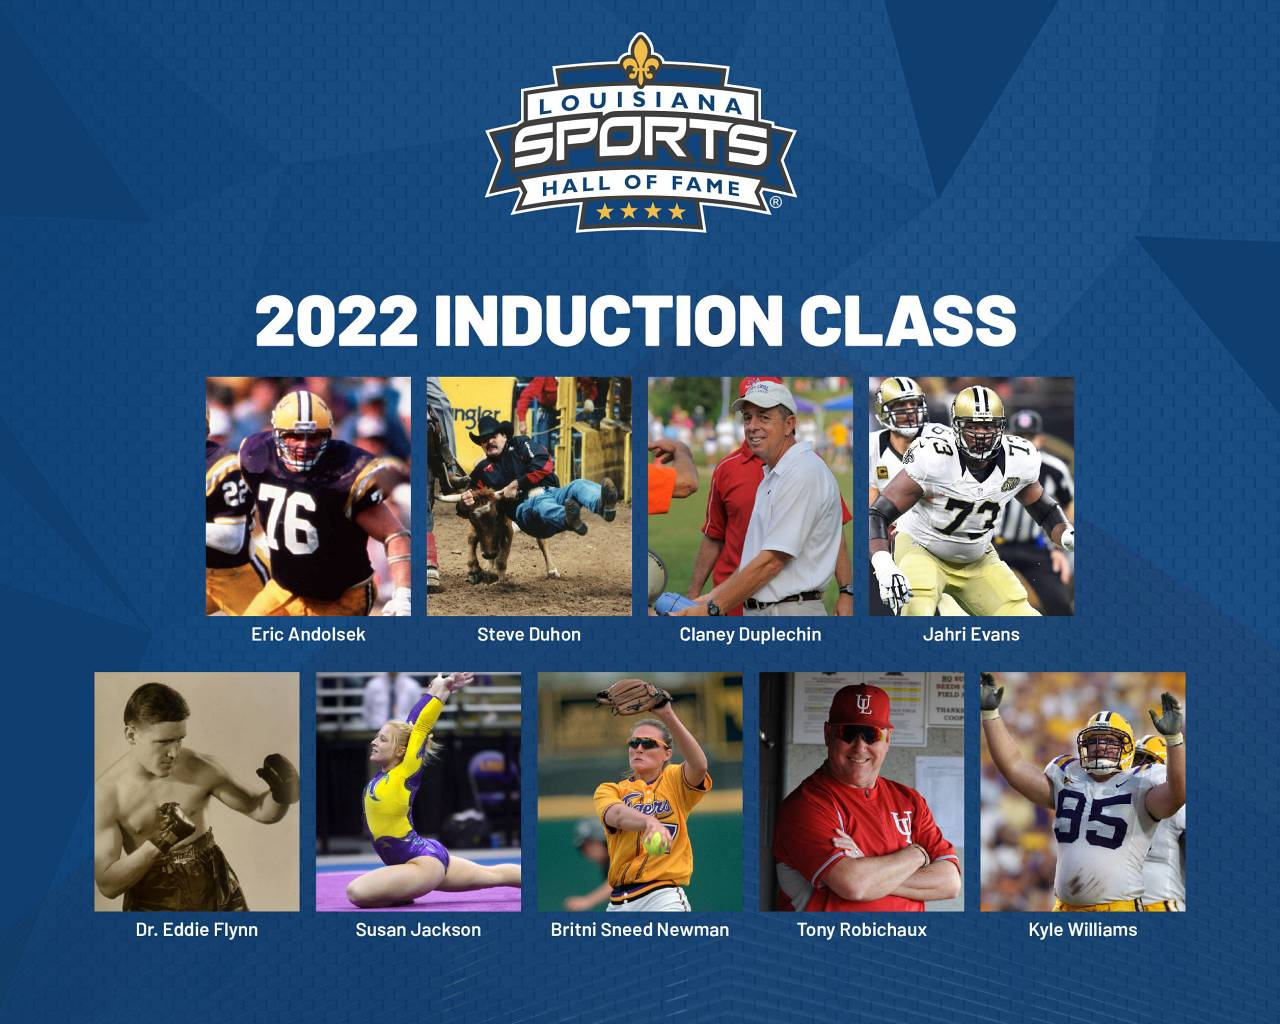 Louisiana Sports Hall of Fame announces 2022 induction class